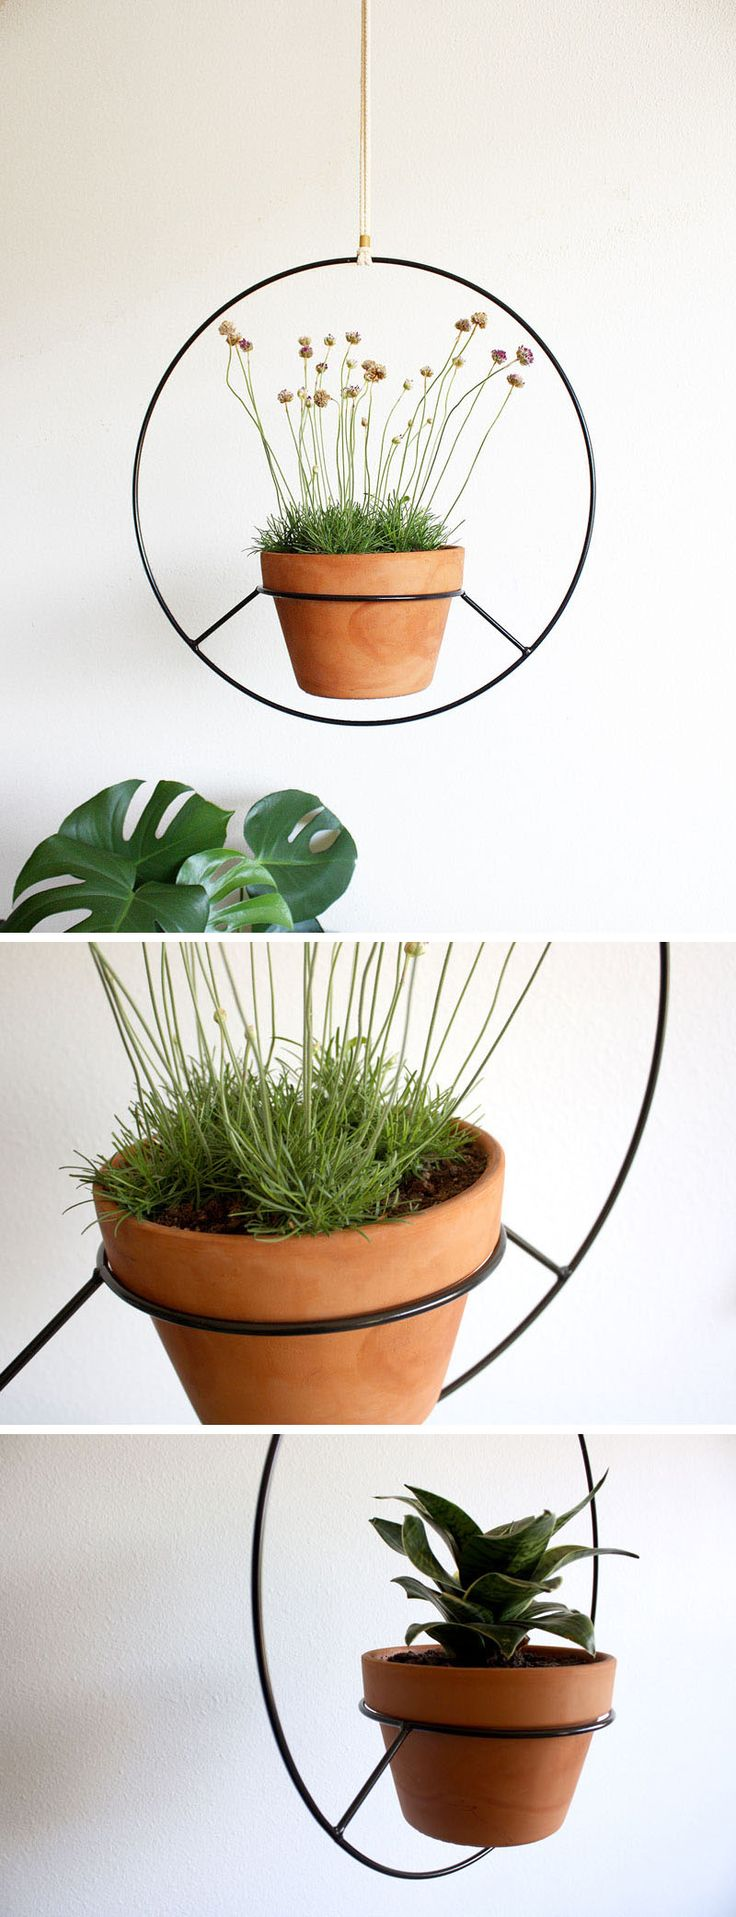 201 best plants images on Pinterest | Succulents, Gardening and ...